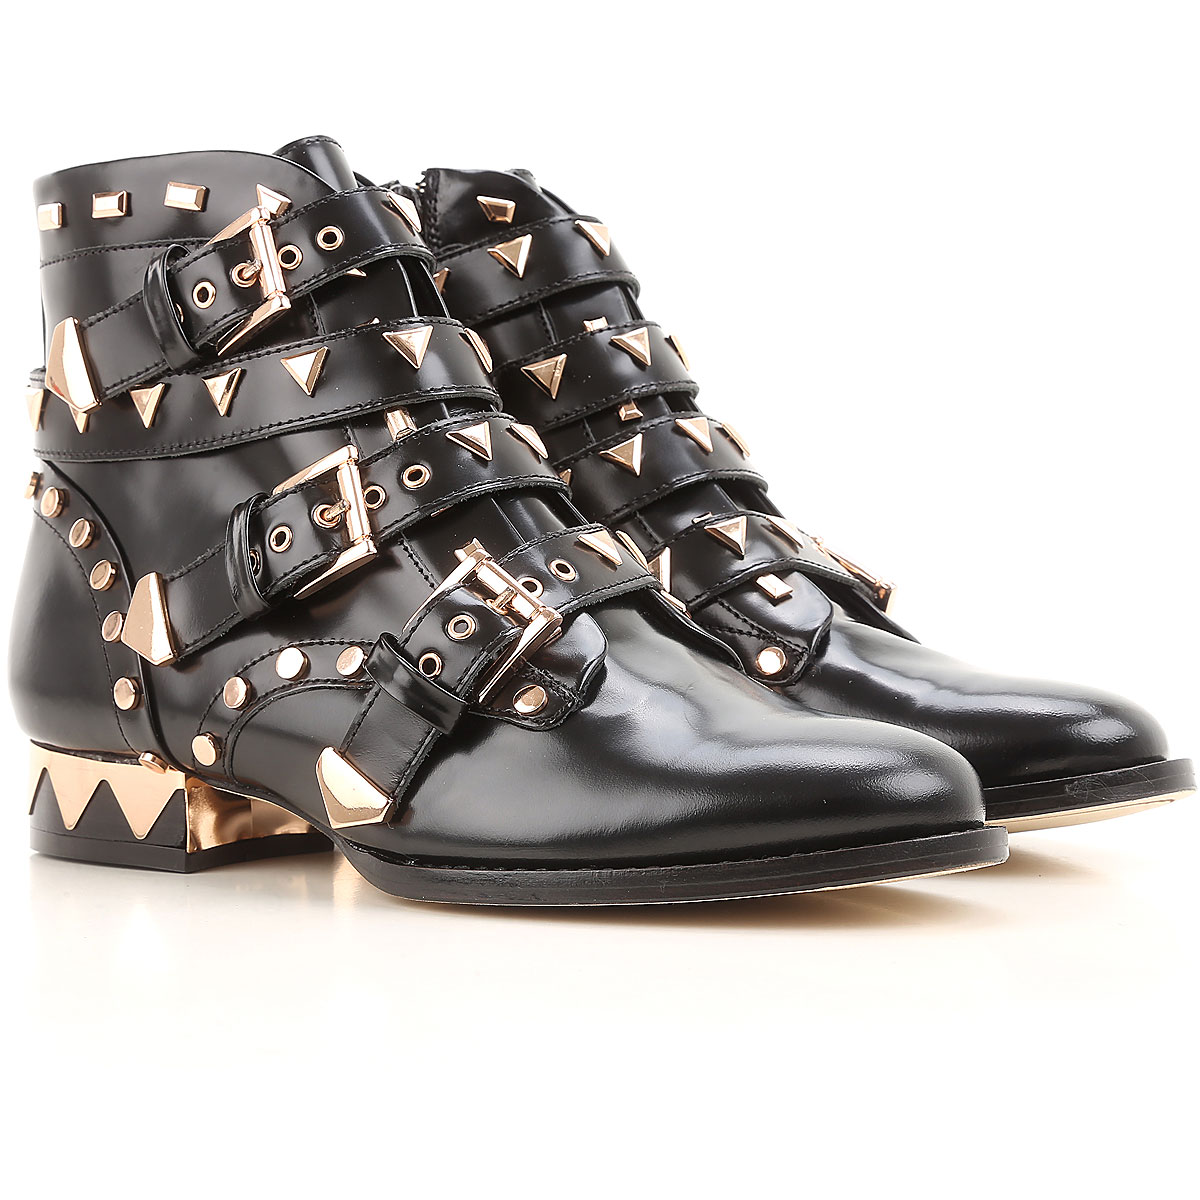 Image of Sophia Webster Boots for Women, Booties On Sale in Outlet, Black, Leather, 2017, 10 6 8.5